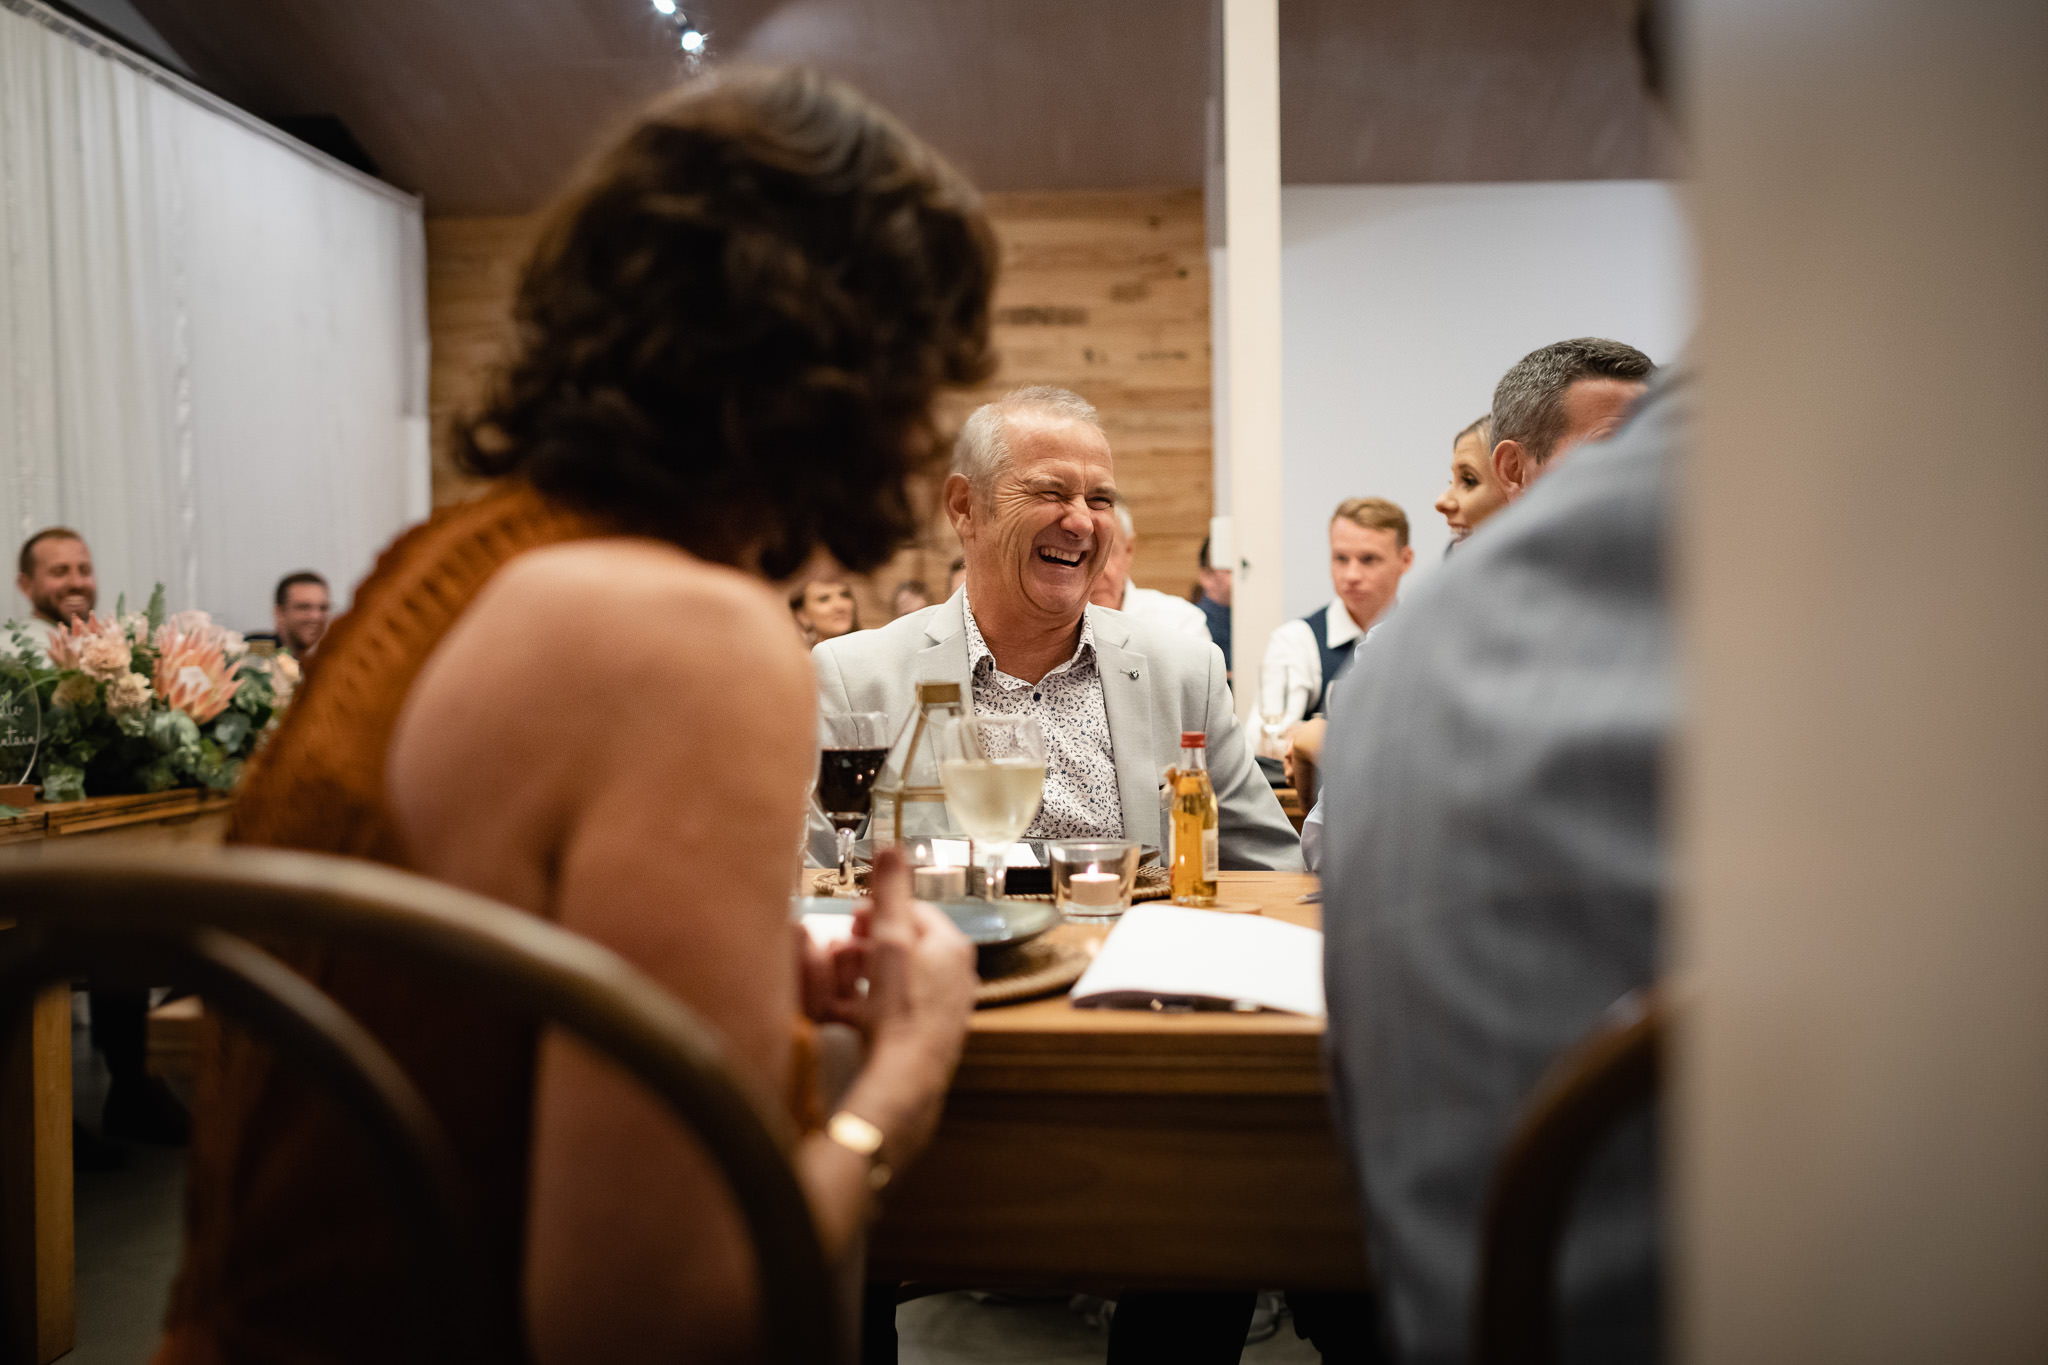 Irish father of the bride laughing during wedding speeches with small bottle of whiskey on the table